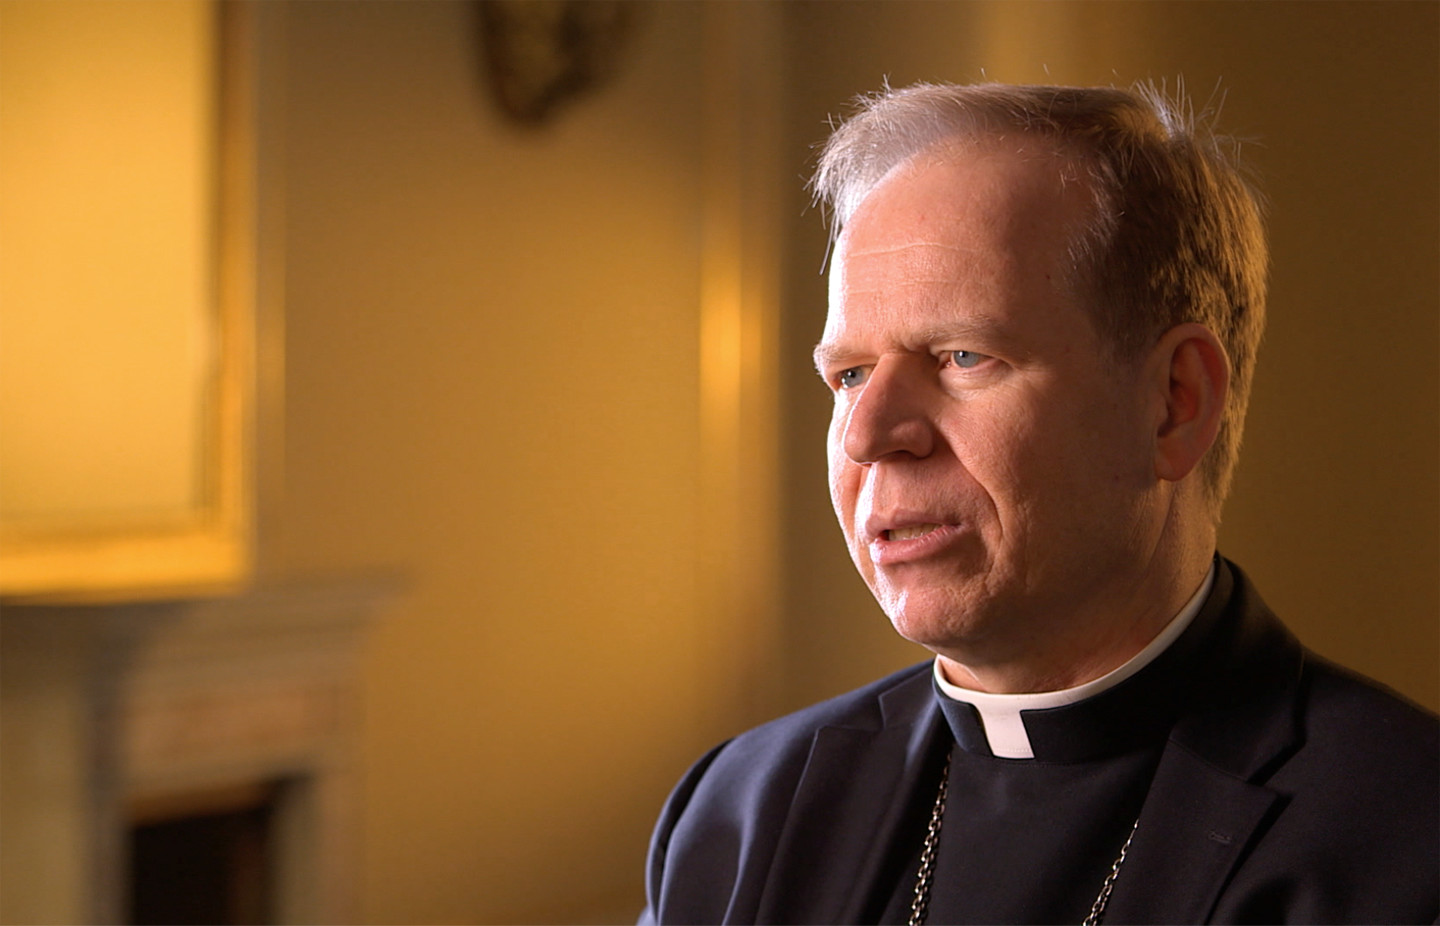 Rev. Gintaras Grusas, interviewee on John Paul 2: Liberating a Continent, the Fall of Communism.